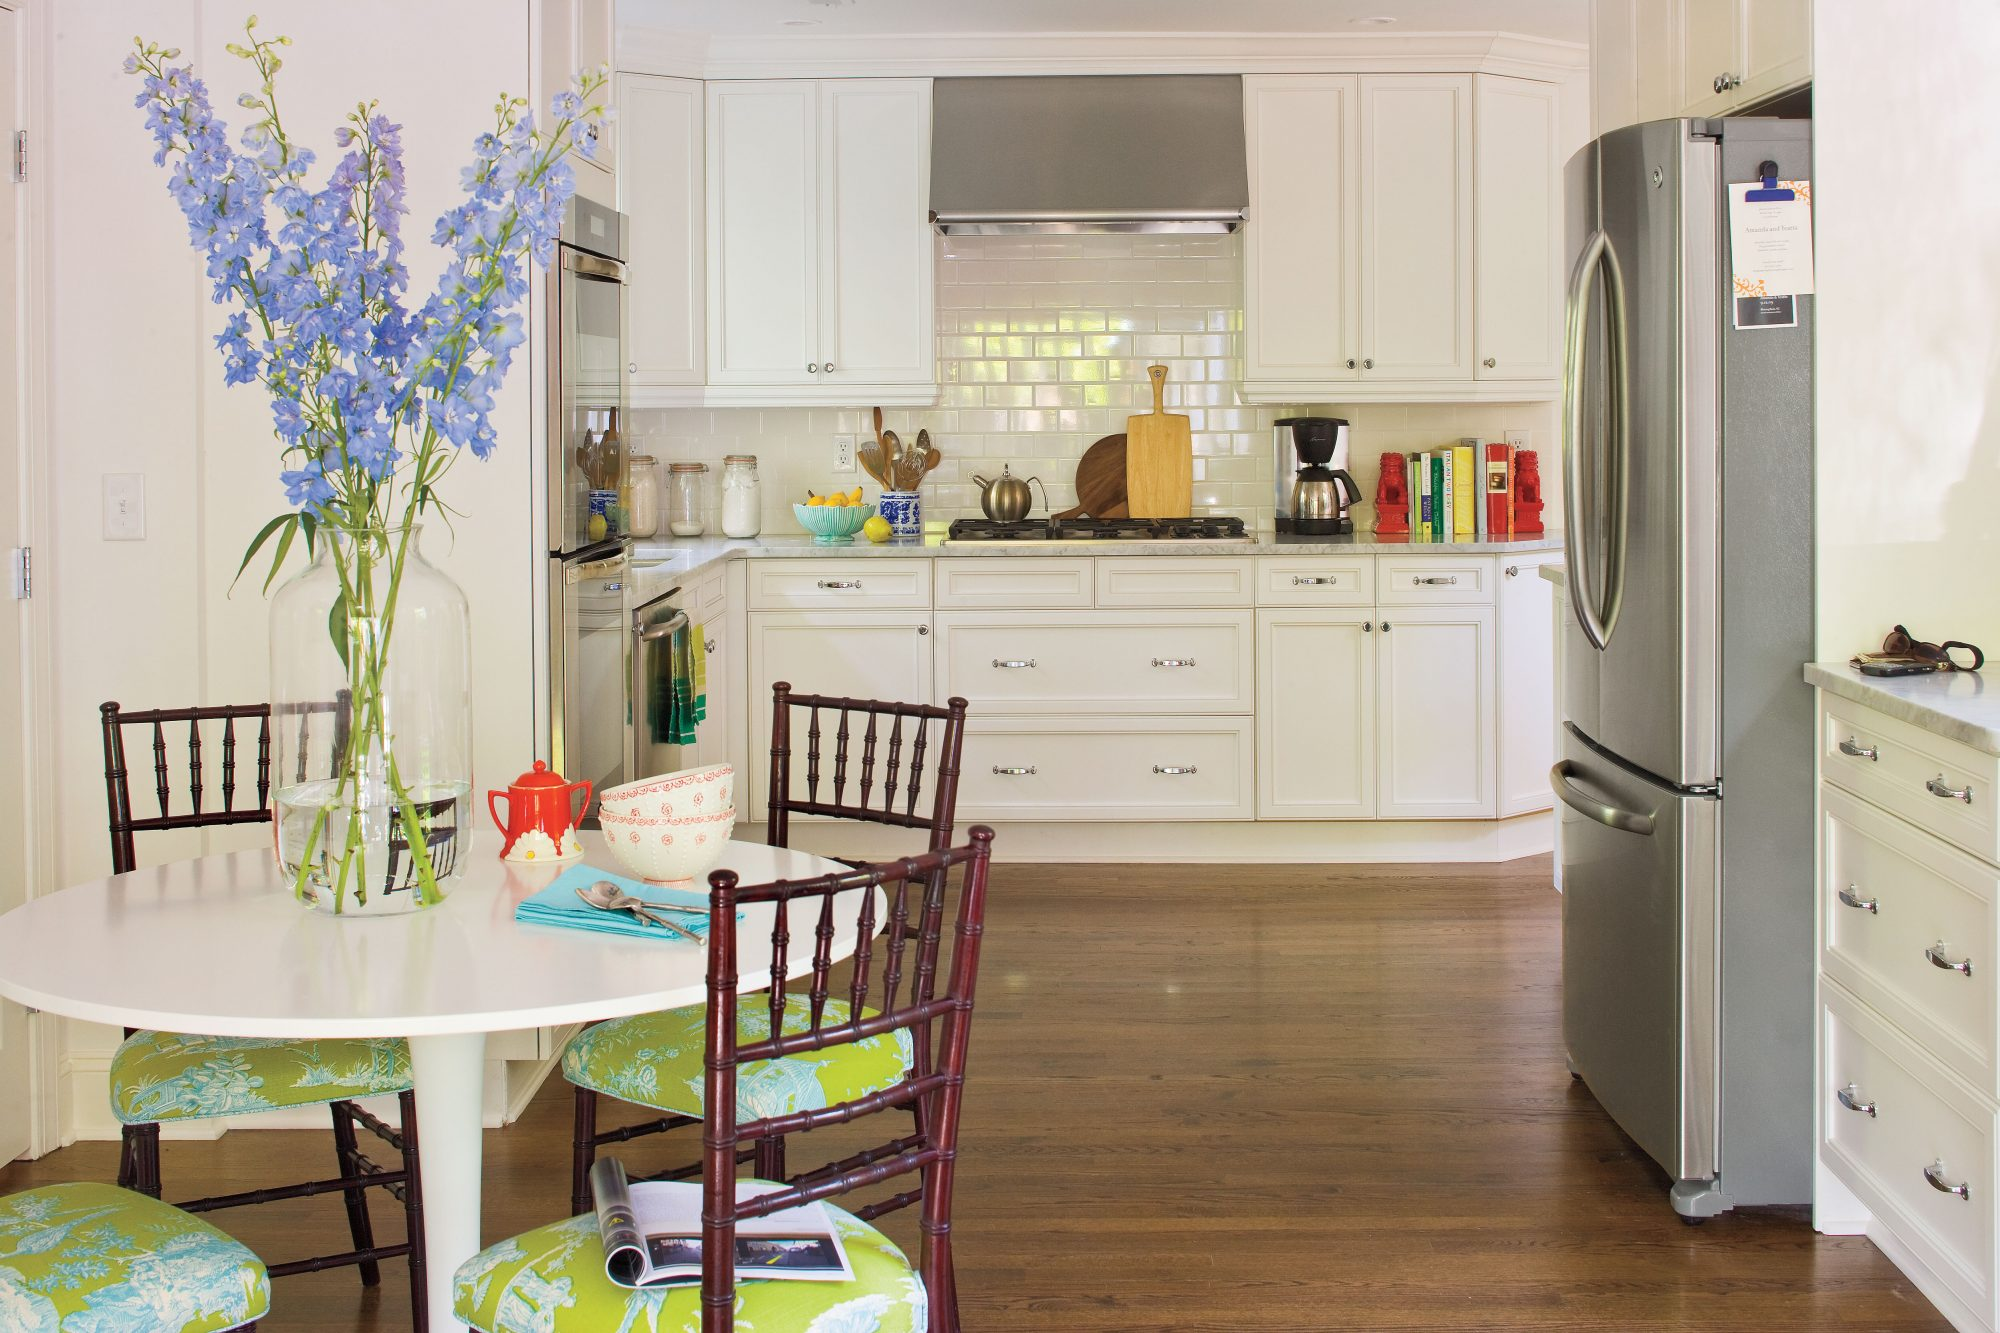 Kitchen Design Ideas: Weekly Fresh Flowers